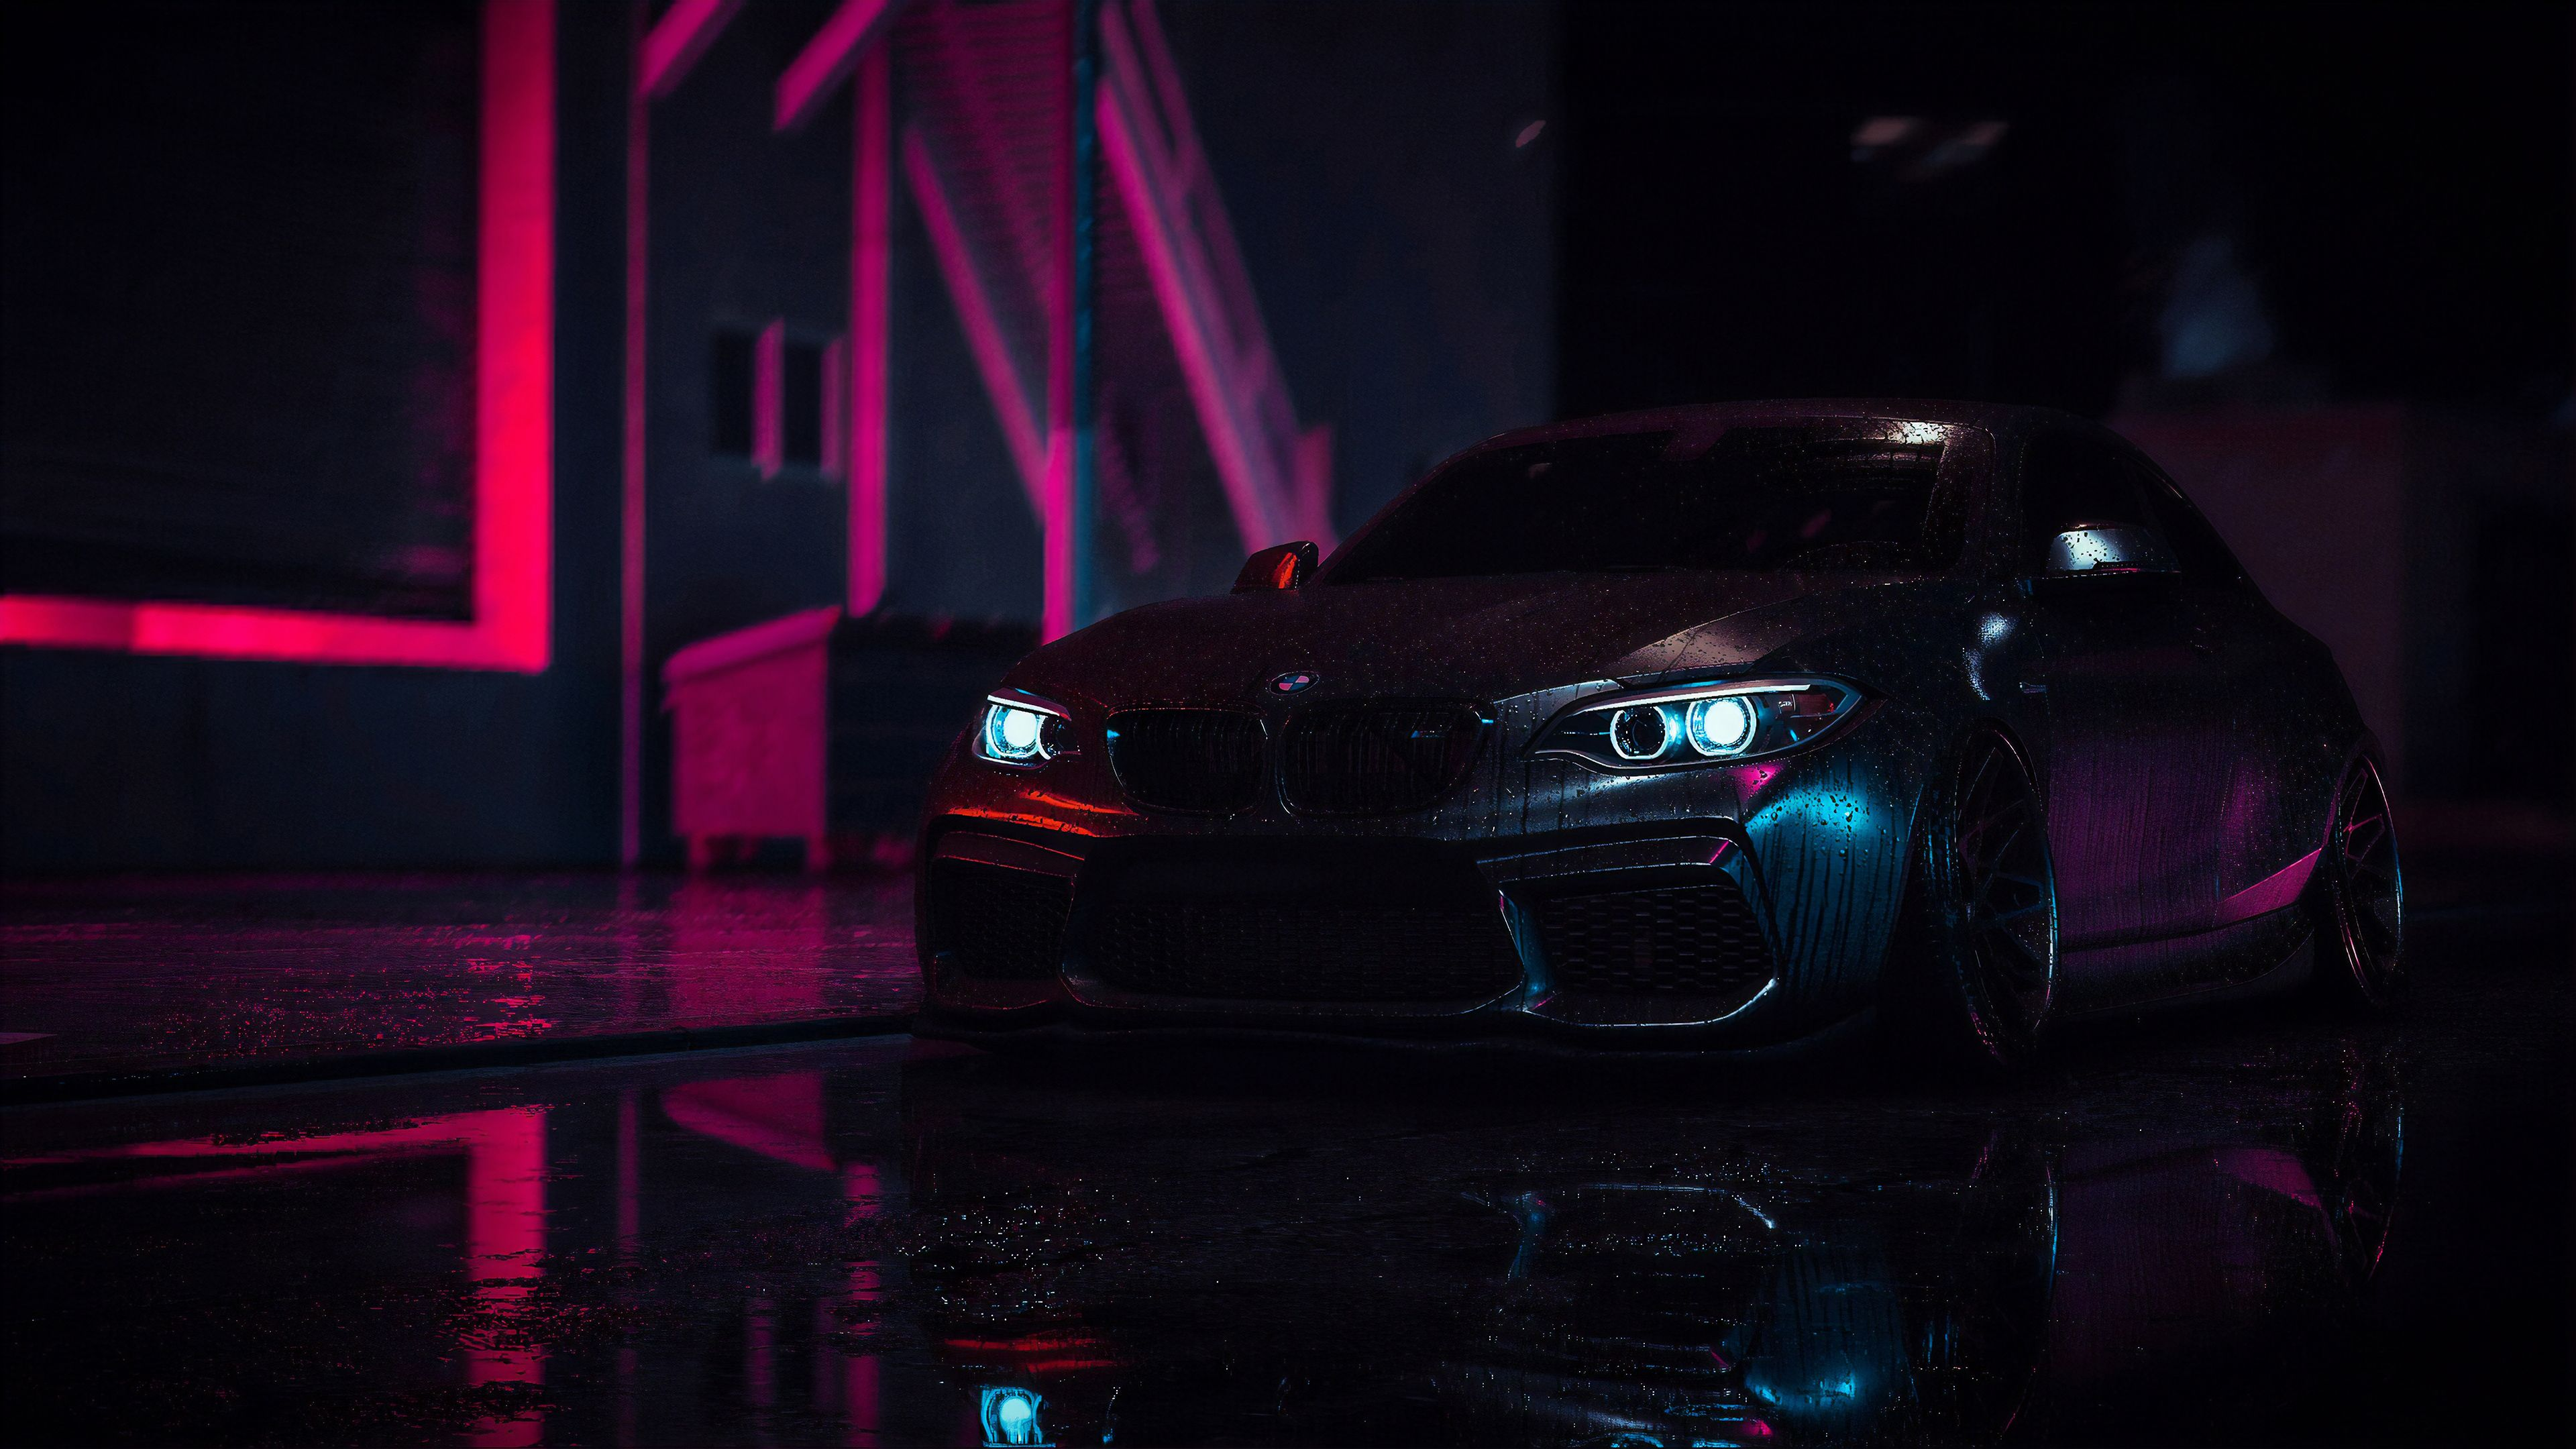 Bmw M2 Nfs Raining Need For Speed Wallpapers Hd Wallpapers Games Wallpapers Cars Wallpapers Bmw Wallpapers Bmw M2 Wal Bmw Wallpapers Car Wallpapers Bmw M2